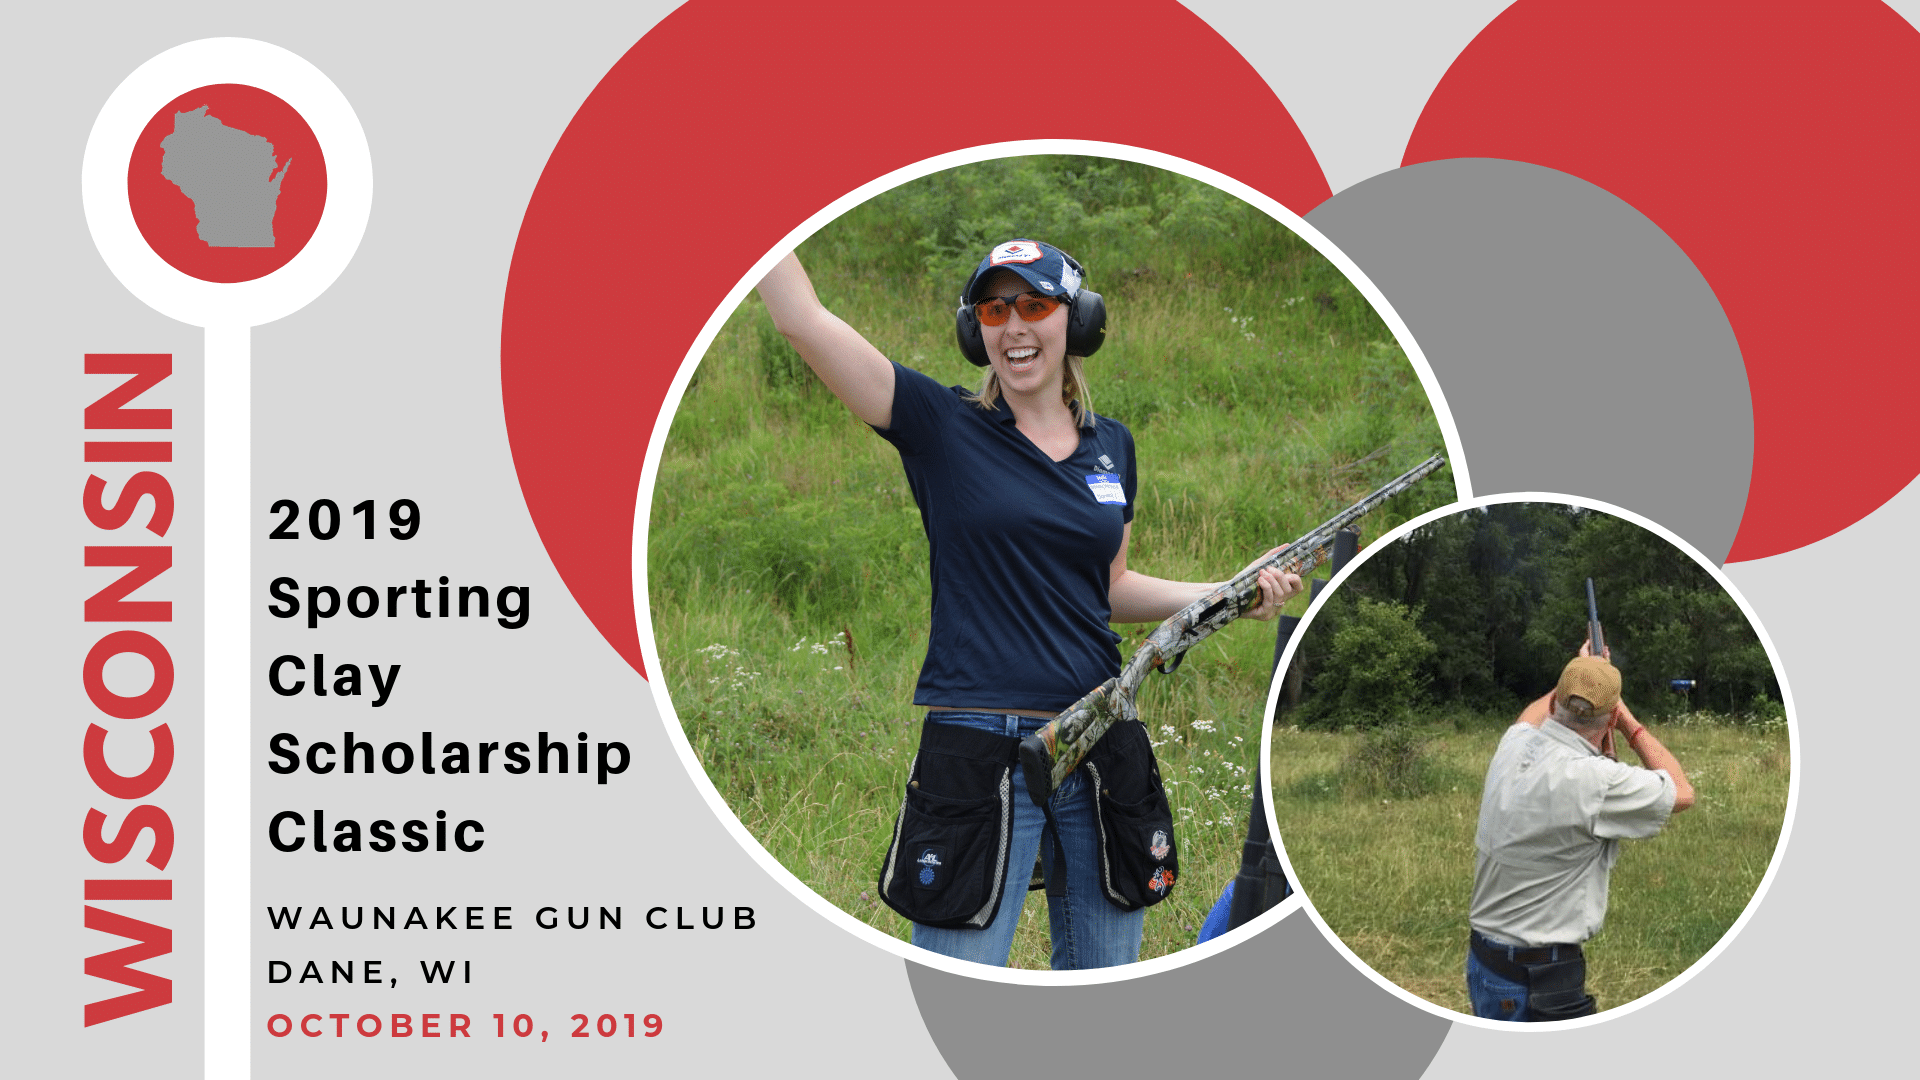 2019 Wisconsin Sporting Clay Scholarship Classic